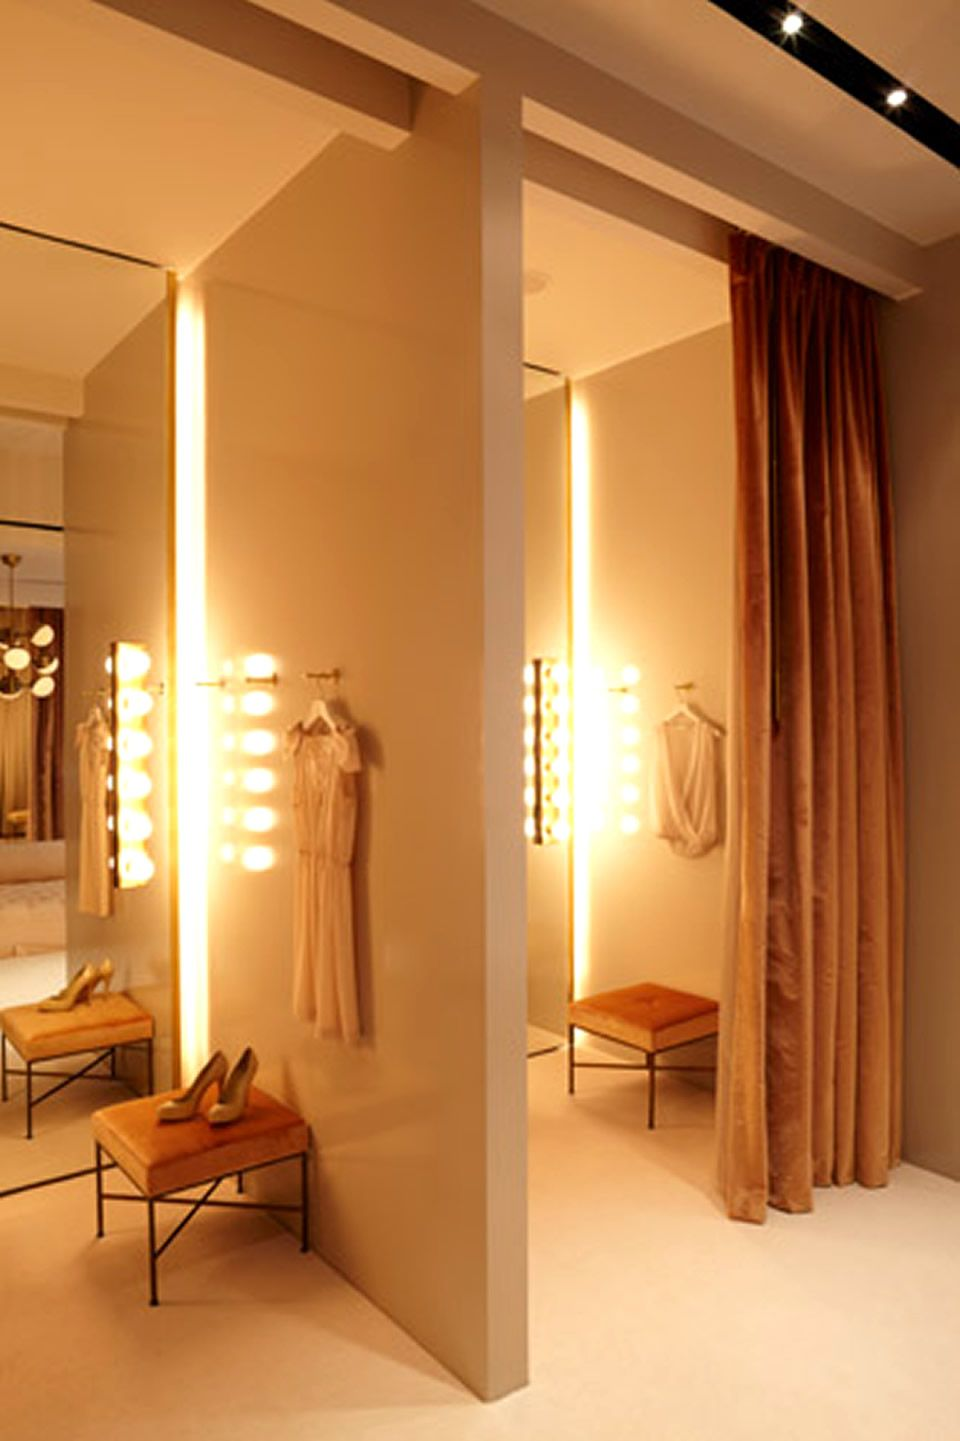 fashion design zen interior design interior design places near me Makeup lights next to the mirror? Dressing Room of Fashion Retail Store Interior  Design, Honor NYC